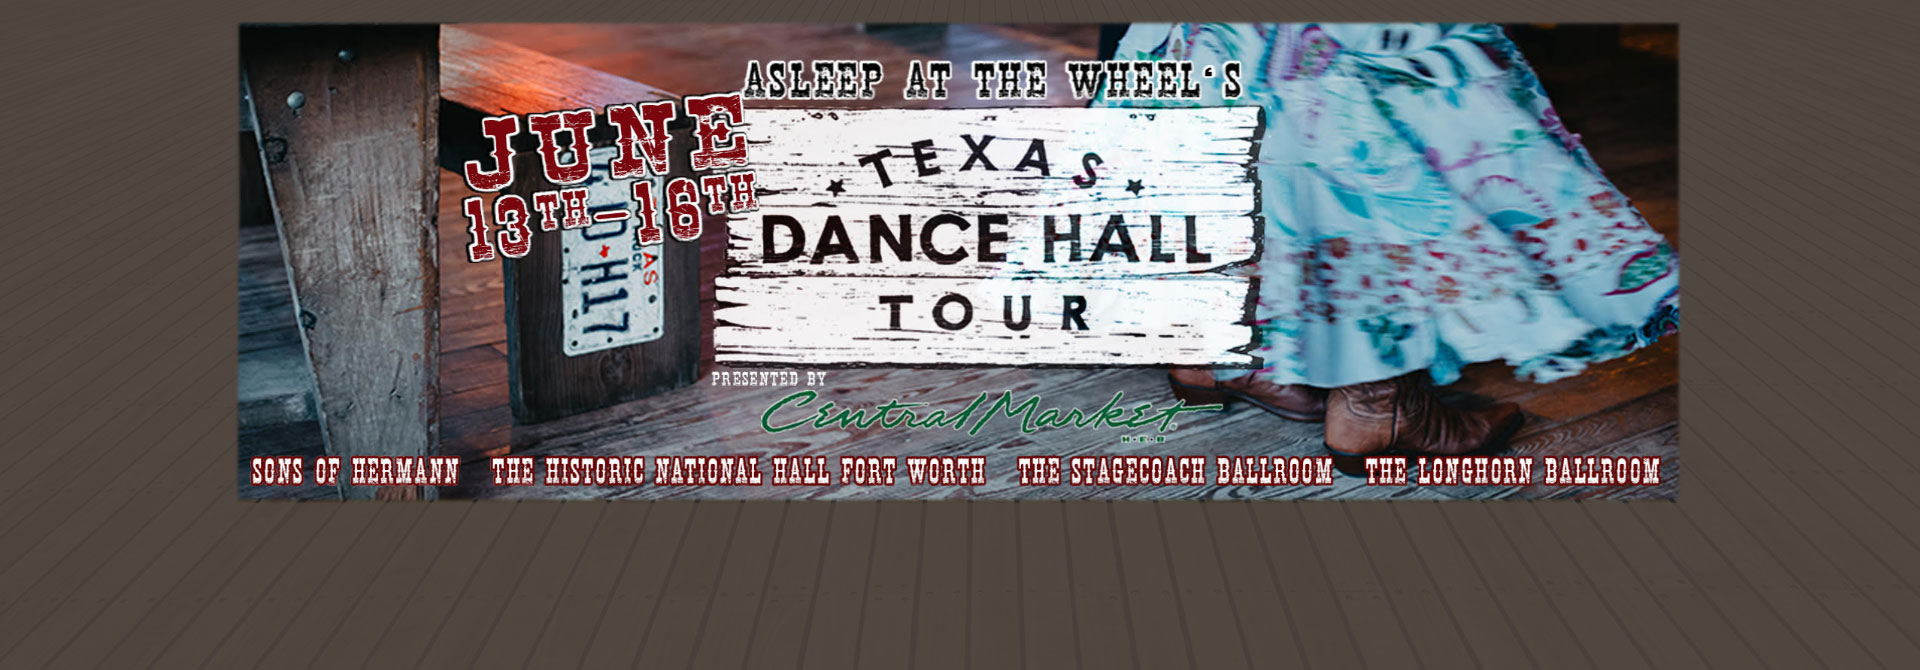 2019 Texas Dance Hall Tour